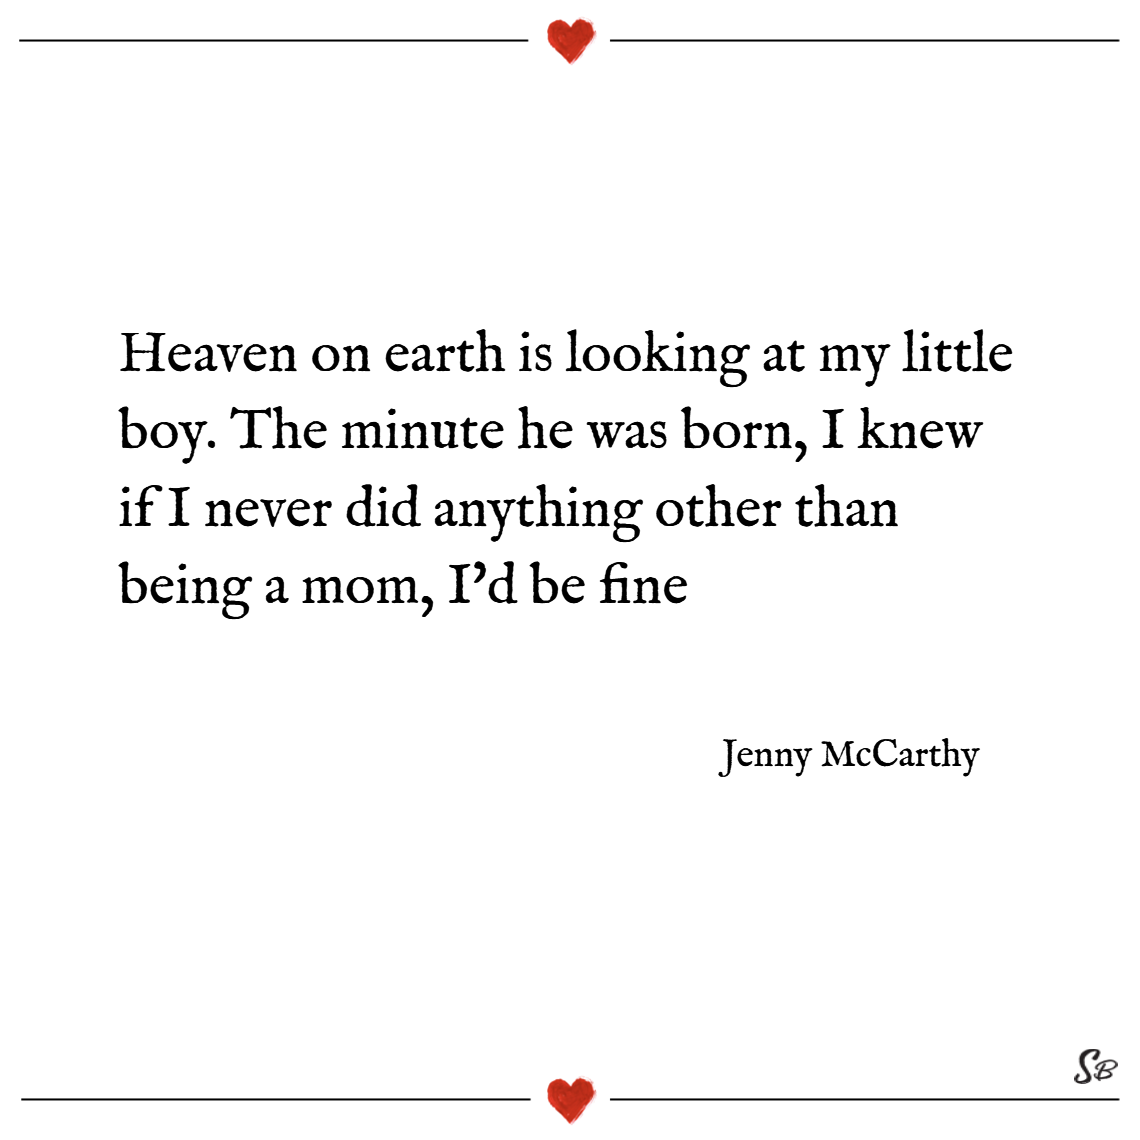 Heaven on earth is looking at my little boy. the minute he was born, i knew if i never did anything other than being a mom, i'd be fine. – jenny mccarthy